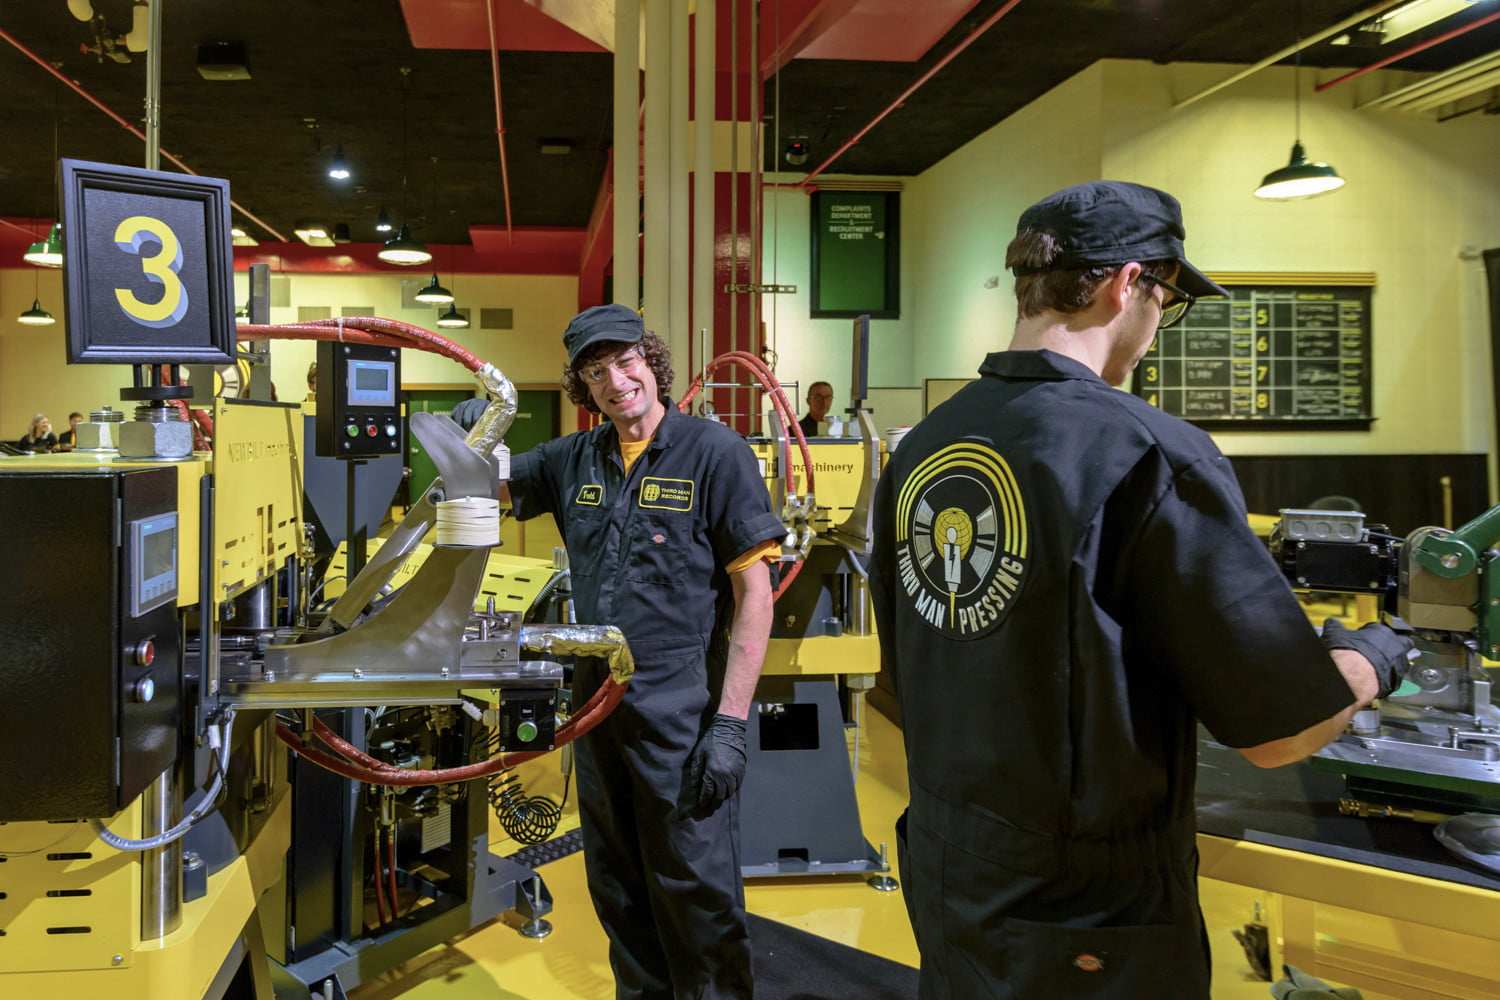 man-looking-at-camera-while-making-vinyl-record-in-machinery